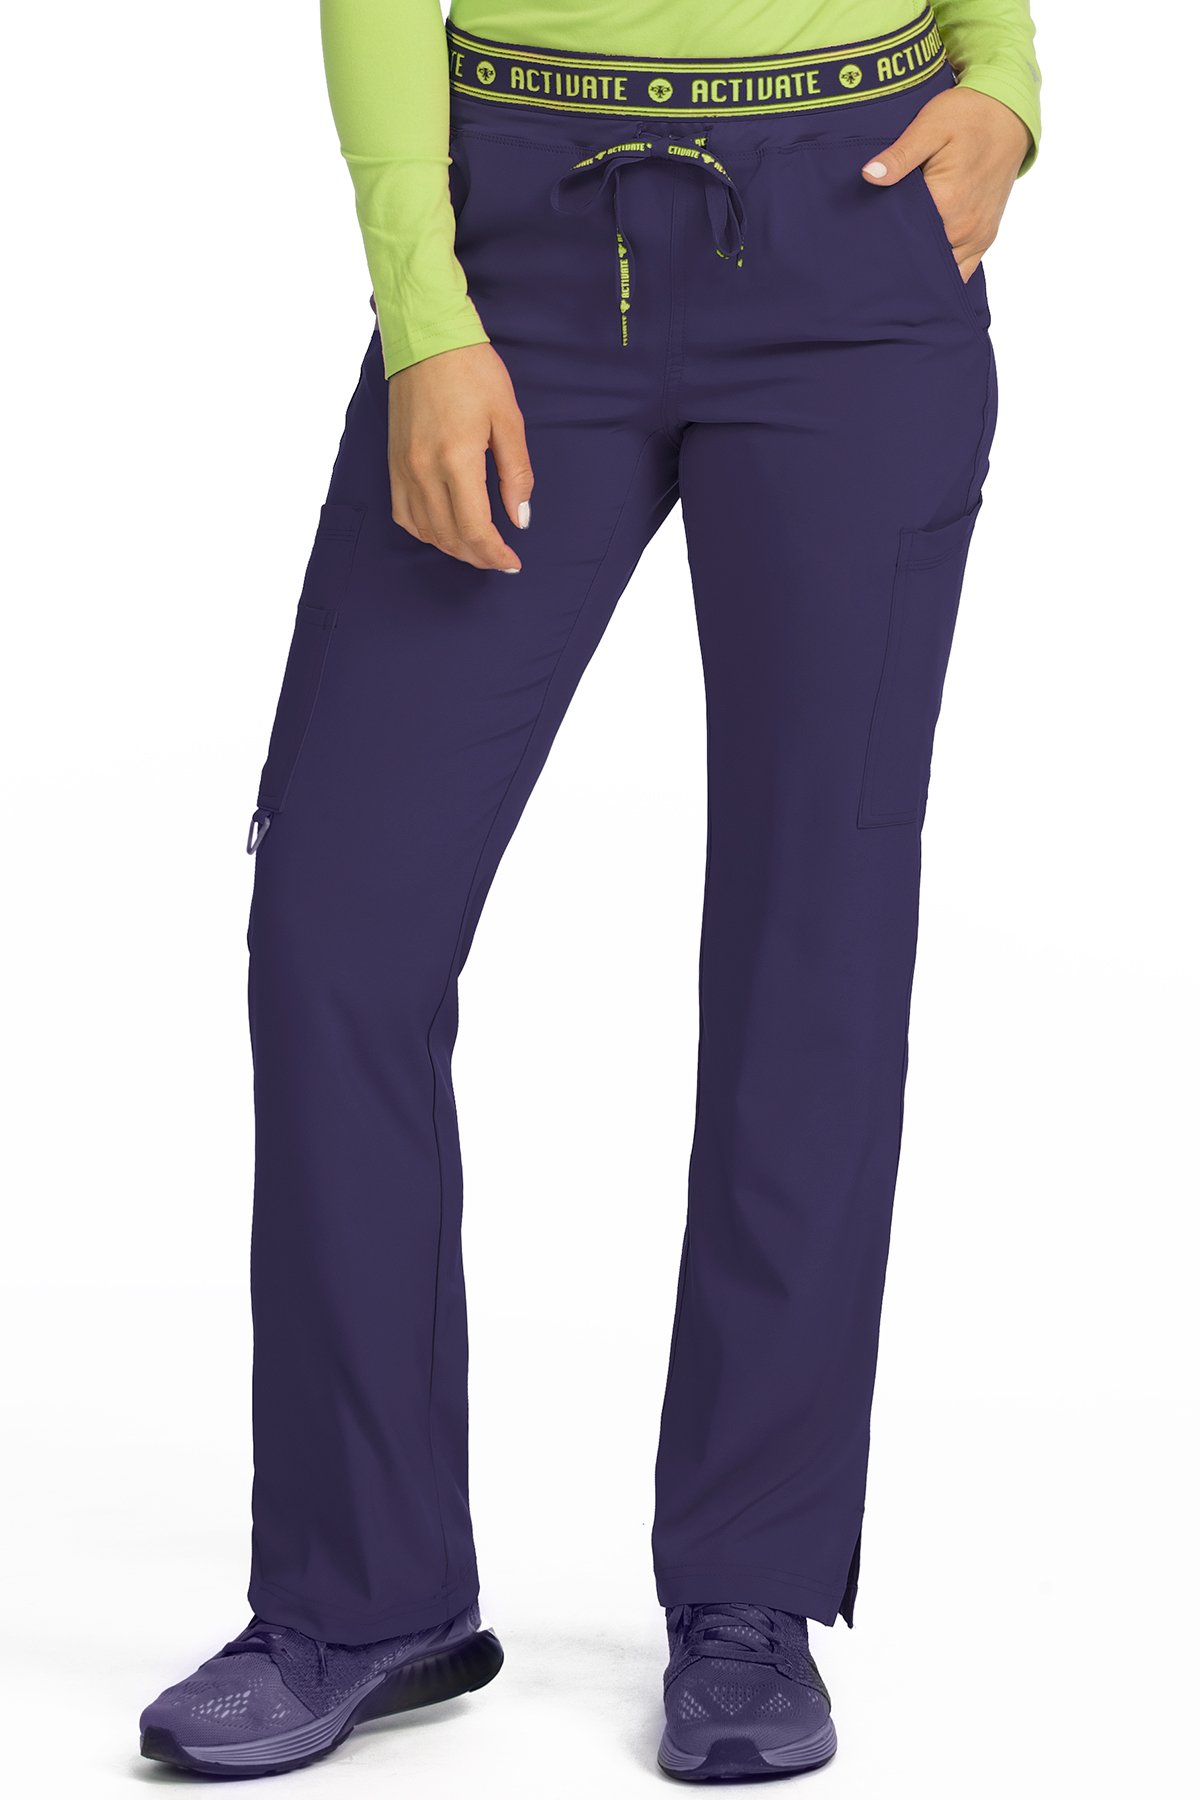 Med Couture Women's 'Activate' Flow Yoga Cargo Scrub Pant, Plum, X-Small Petite